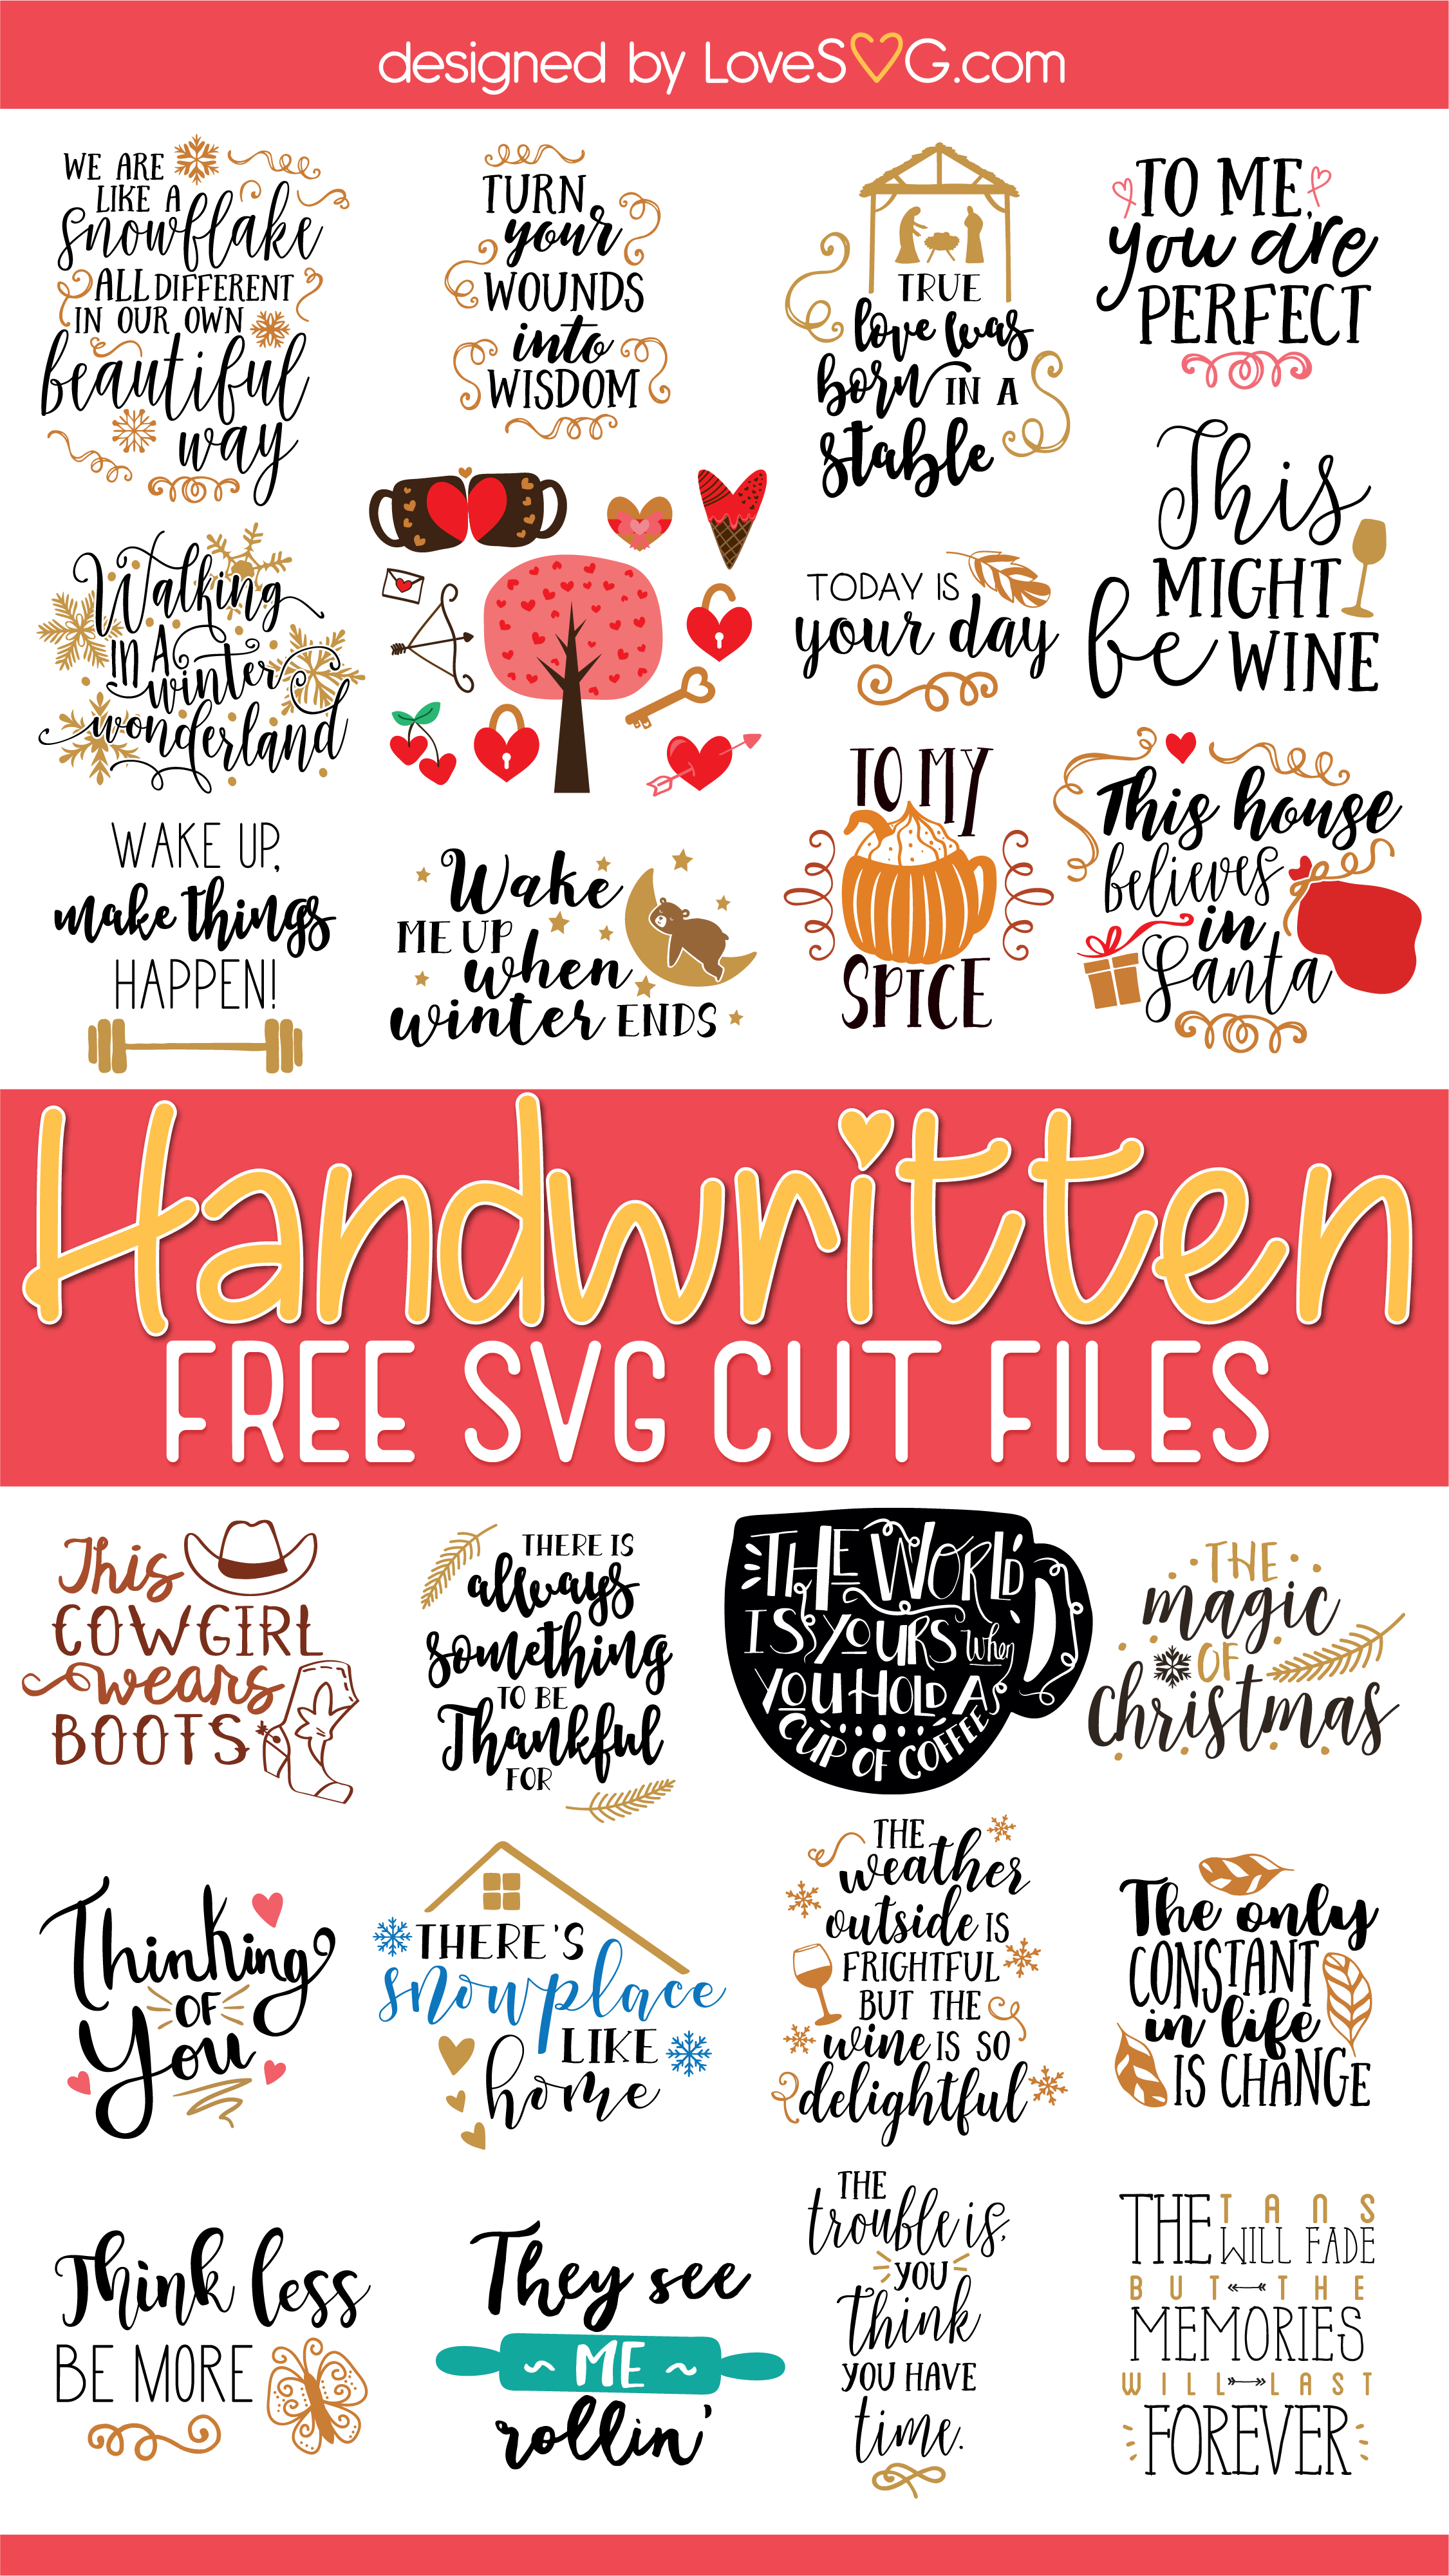 Download Free SVG Cut File for Cricut and Silhouette in SVG, PNG ...